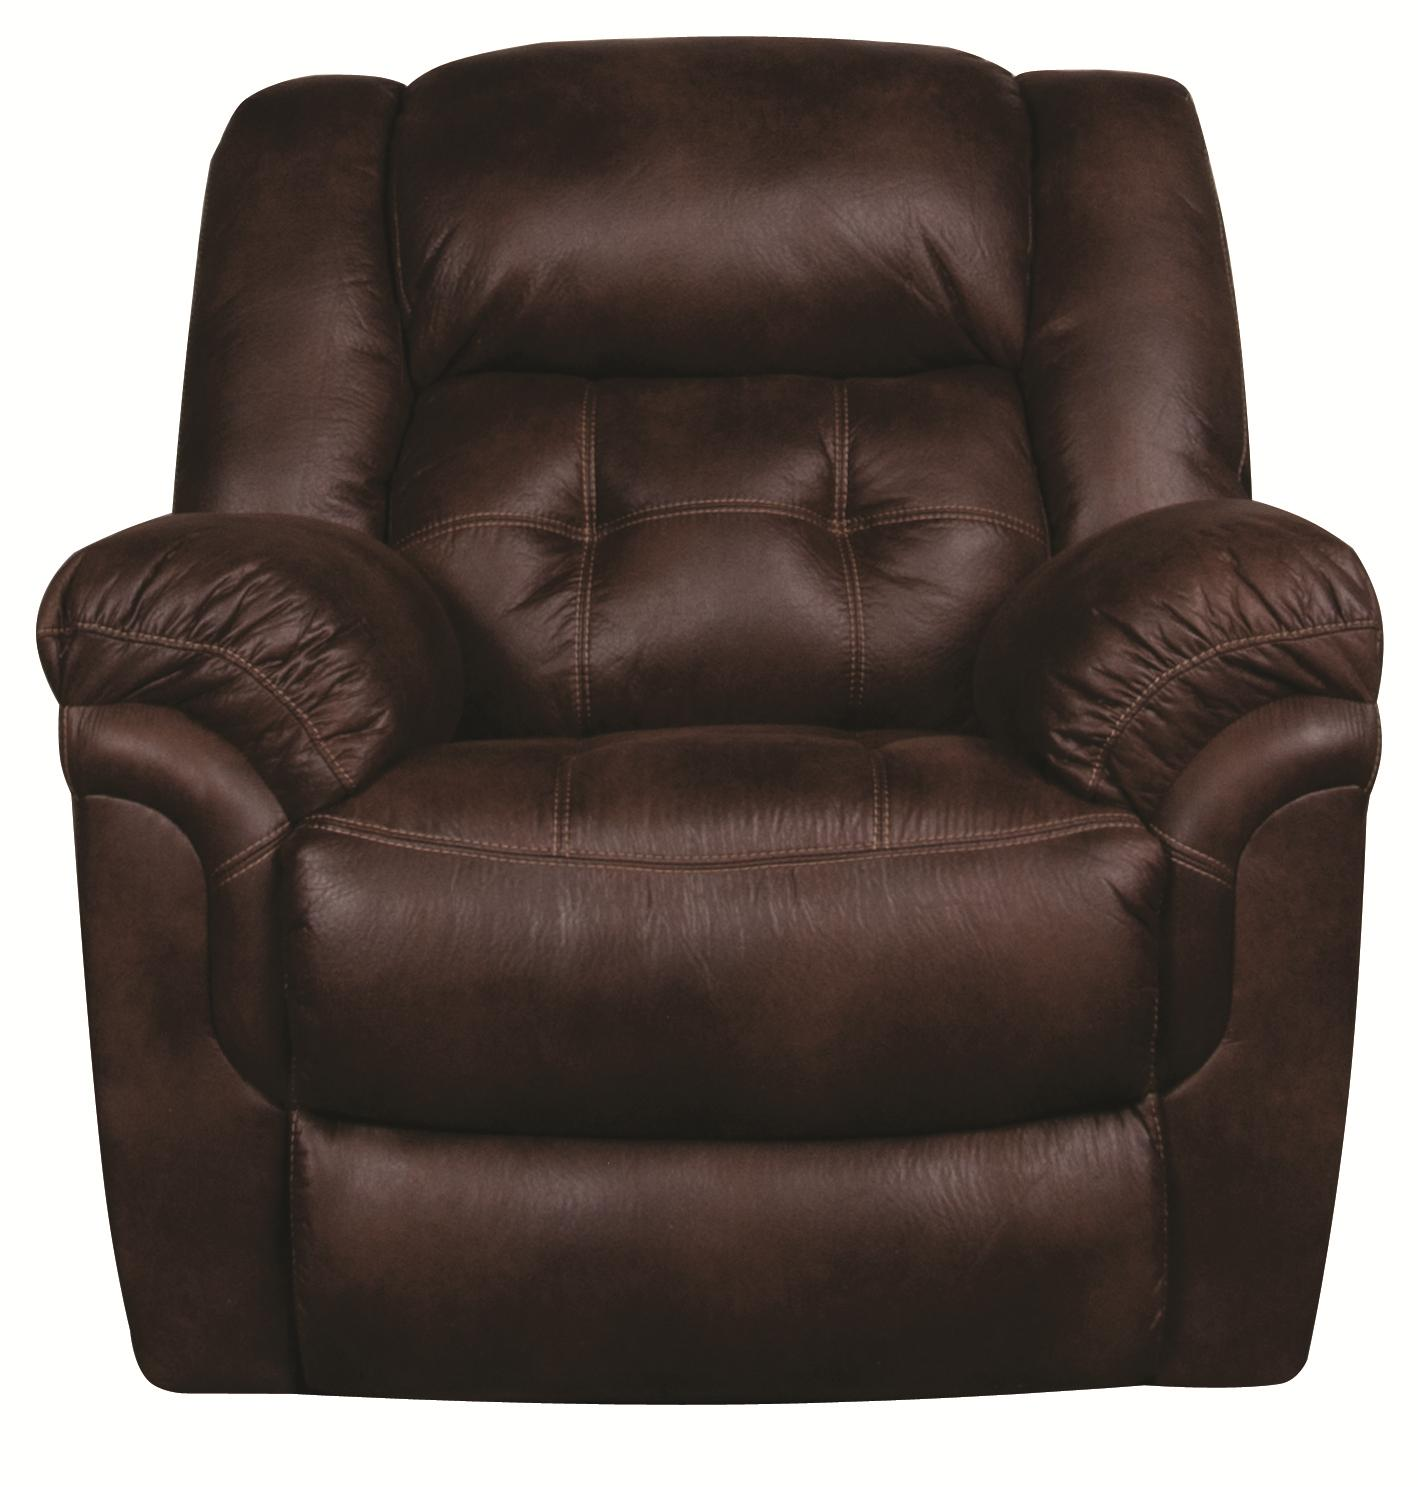 Elijah Elijah Rocker Recliner by HomeStretch at Morris Home